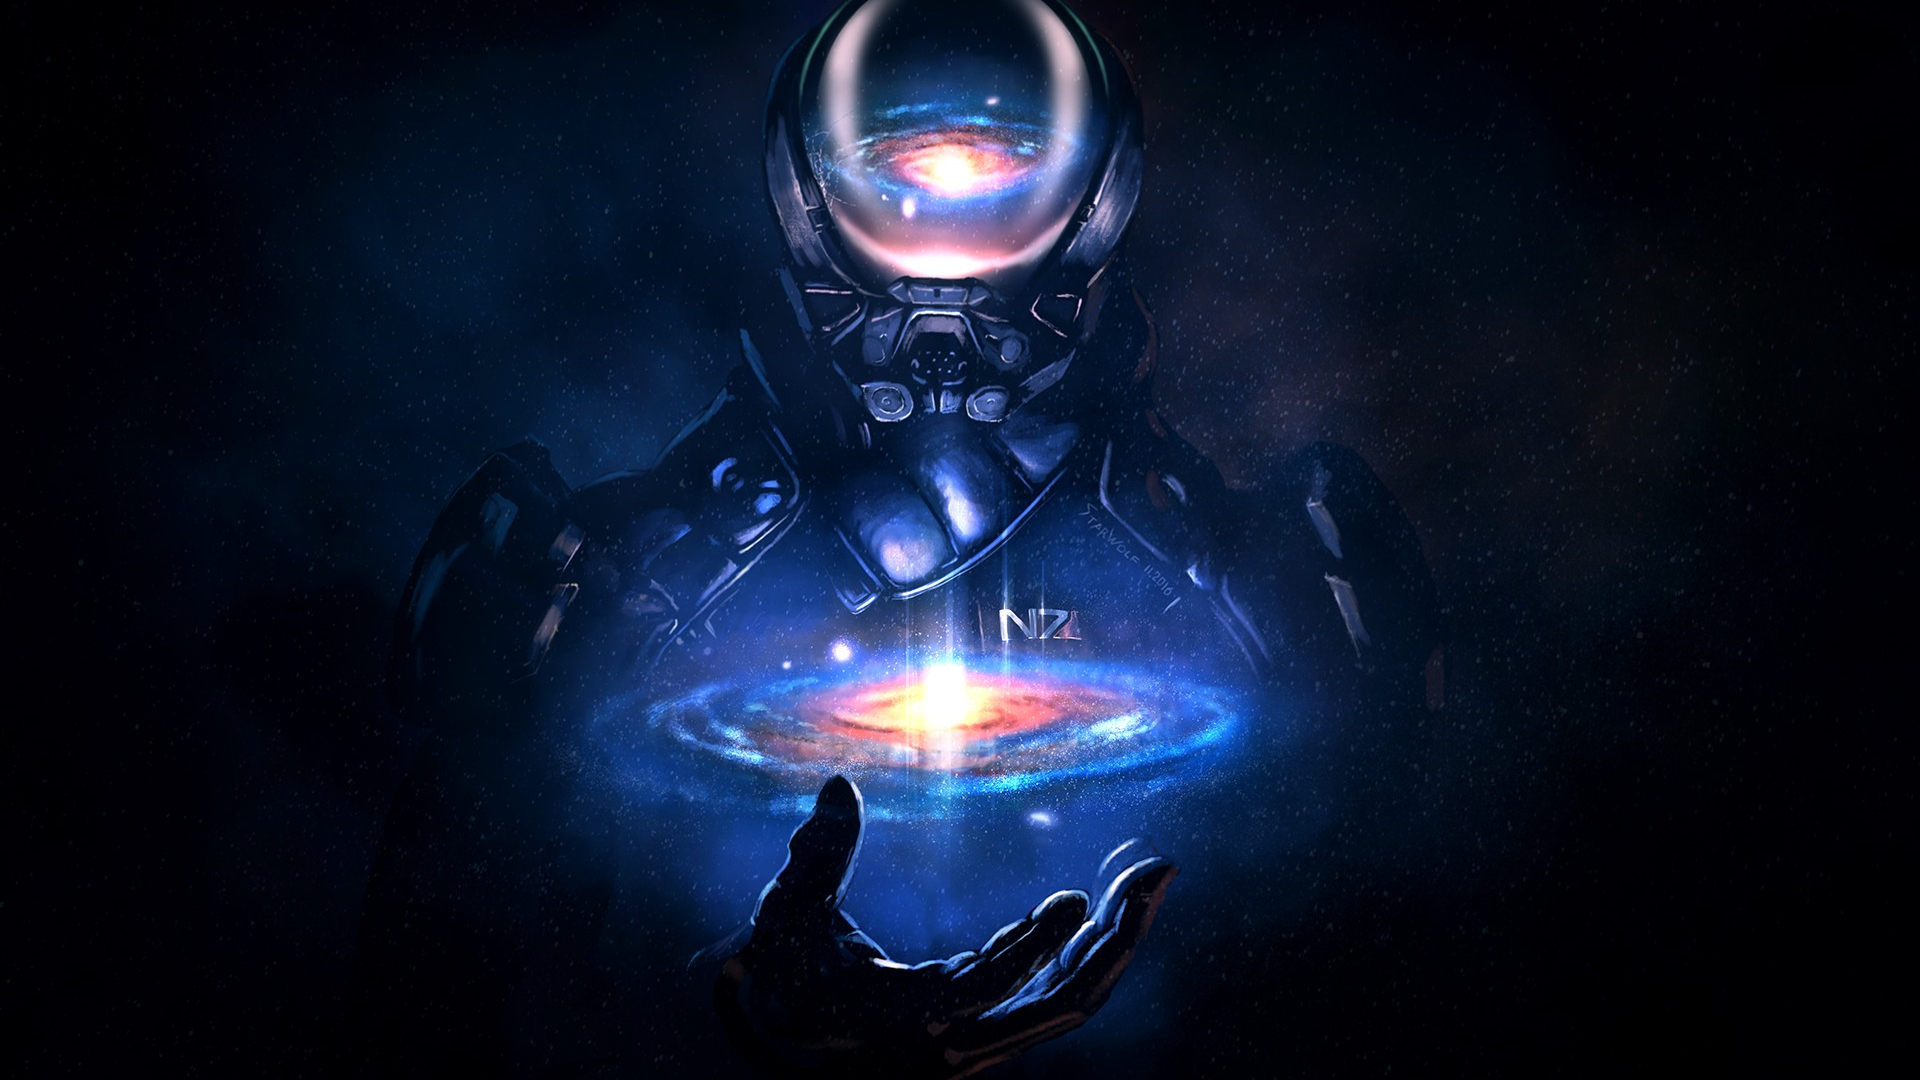 Download 1920x1080 Wallpaper Mass Effect Andromeda Video Game N7